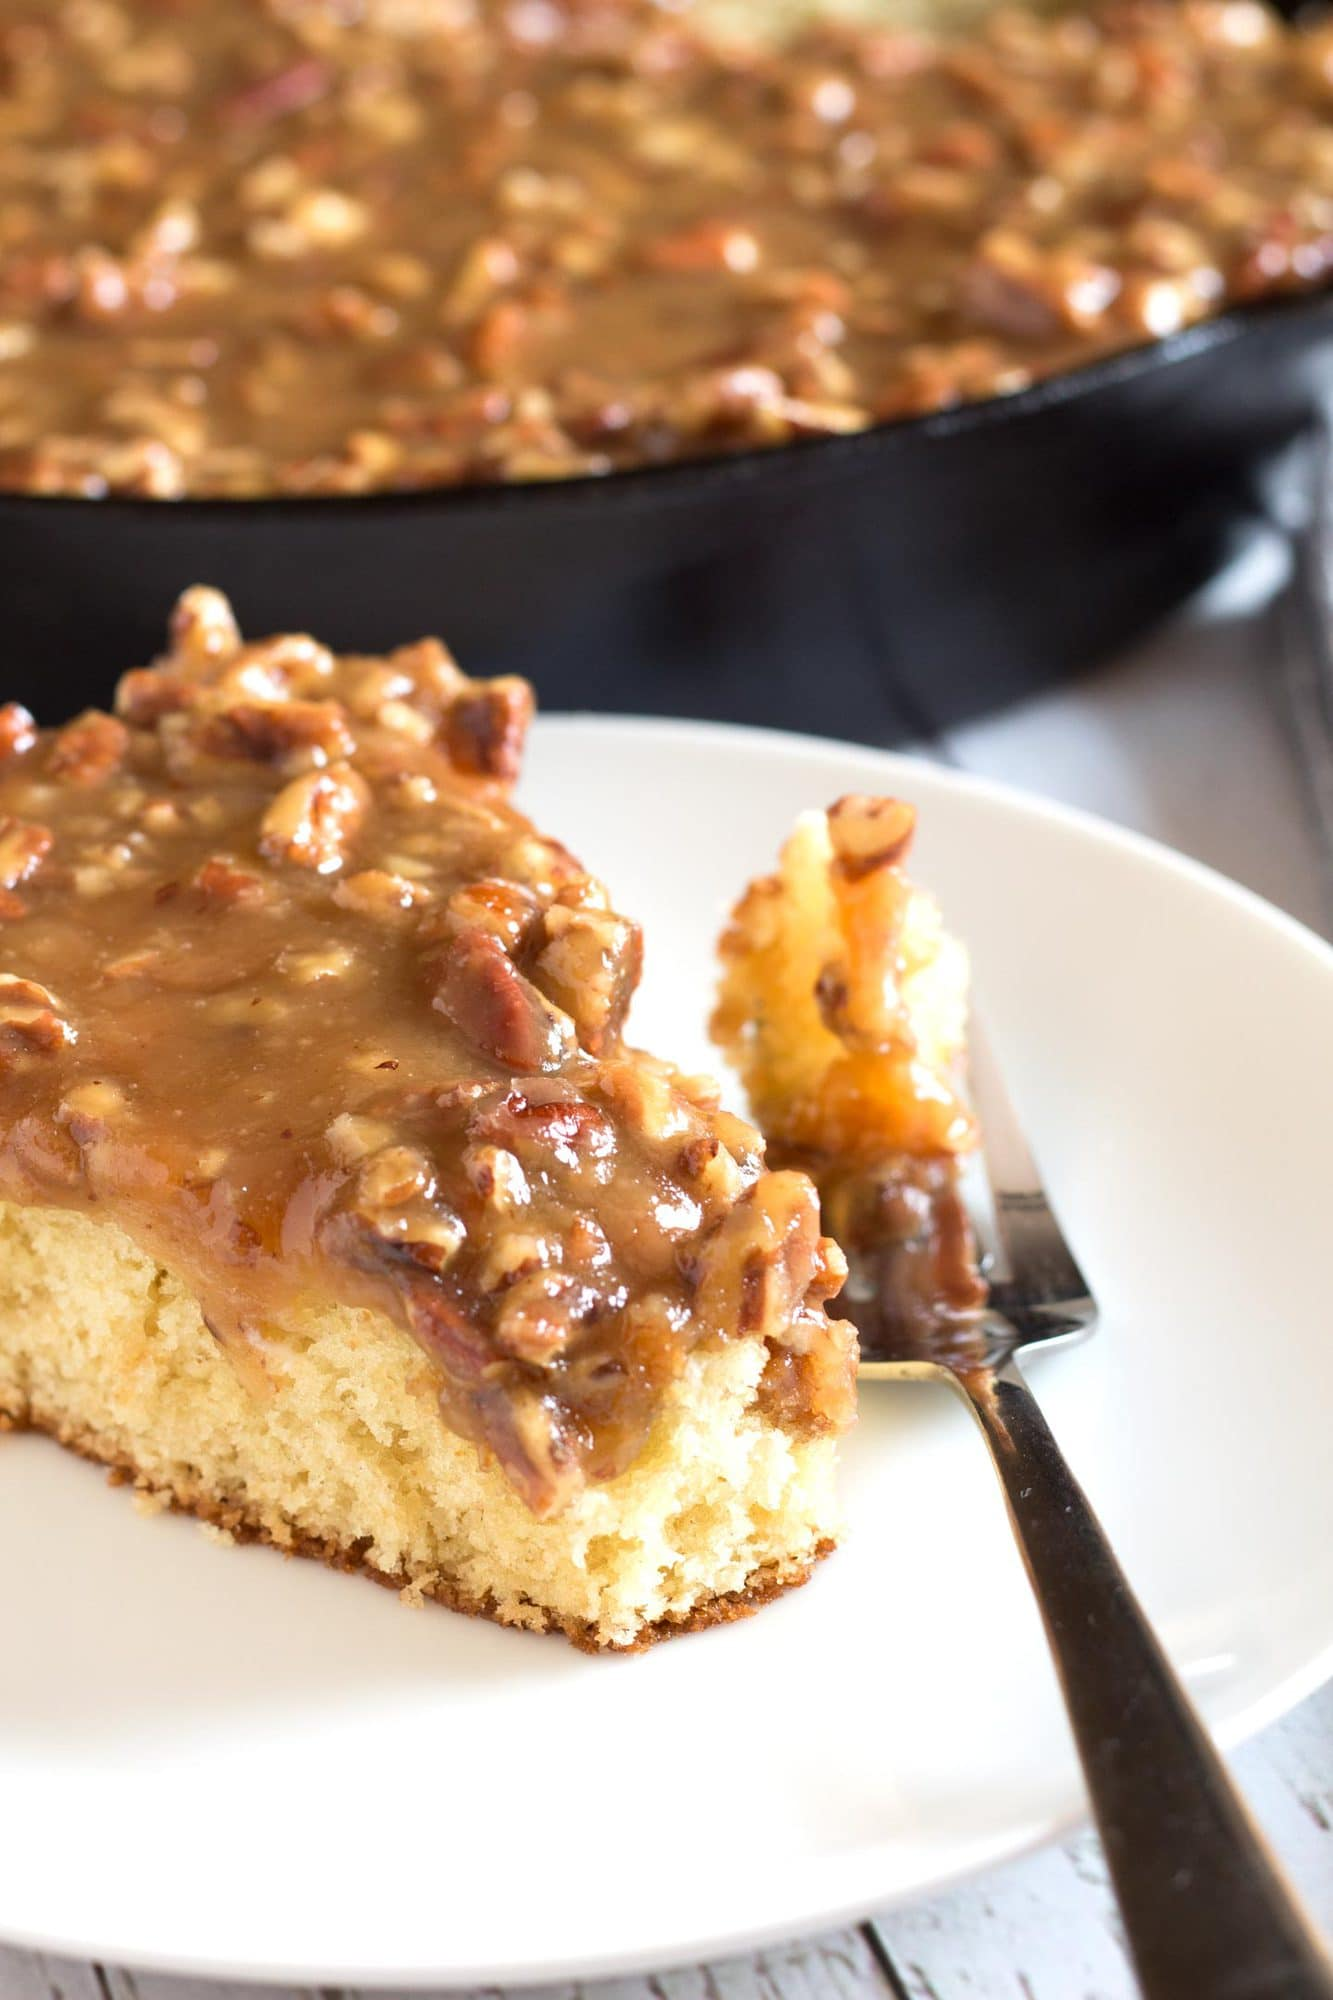 Slice of skillet cake with praline topping with bite on fork.